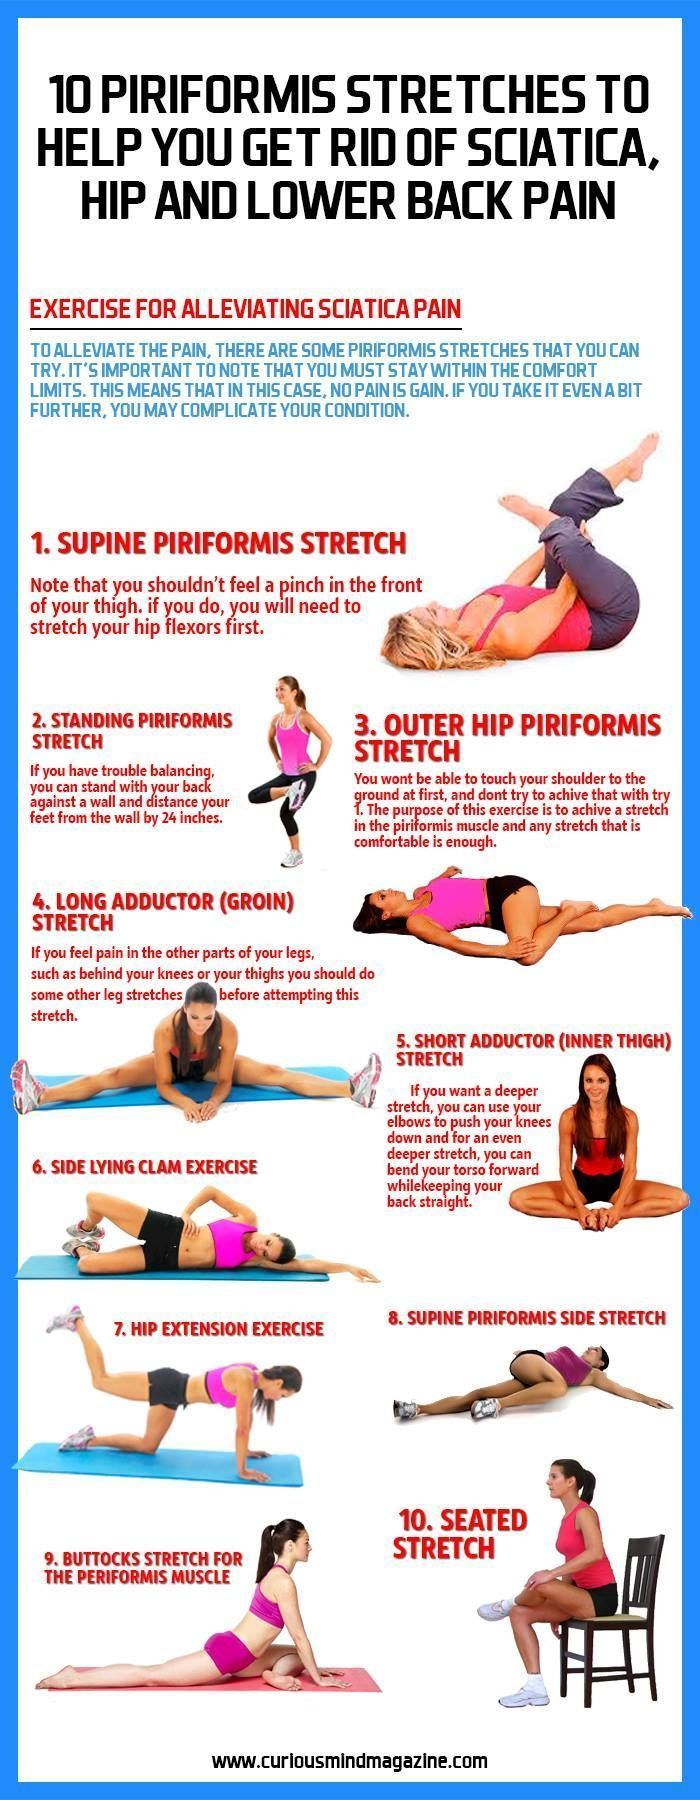 43+ Yoga for lower back pain hip and thigh flexibility ideas